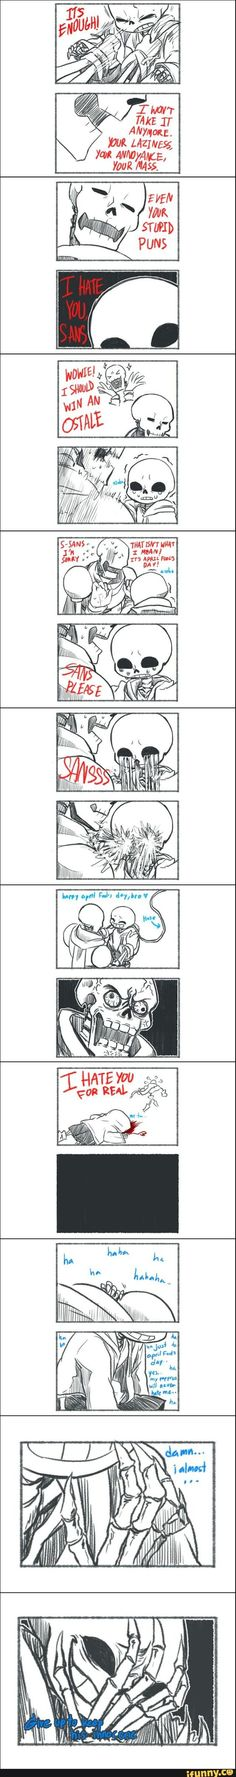 sans and papyrus - skelebros《that turned dark real fast Undertale Comic Funny, Undertale Love, Anime Undertale, Undertale Memes, Frisk, Horror Comics, Funny Comics, Comic Art, Sans And Papyrus